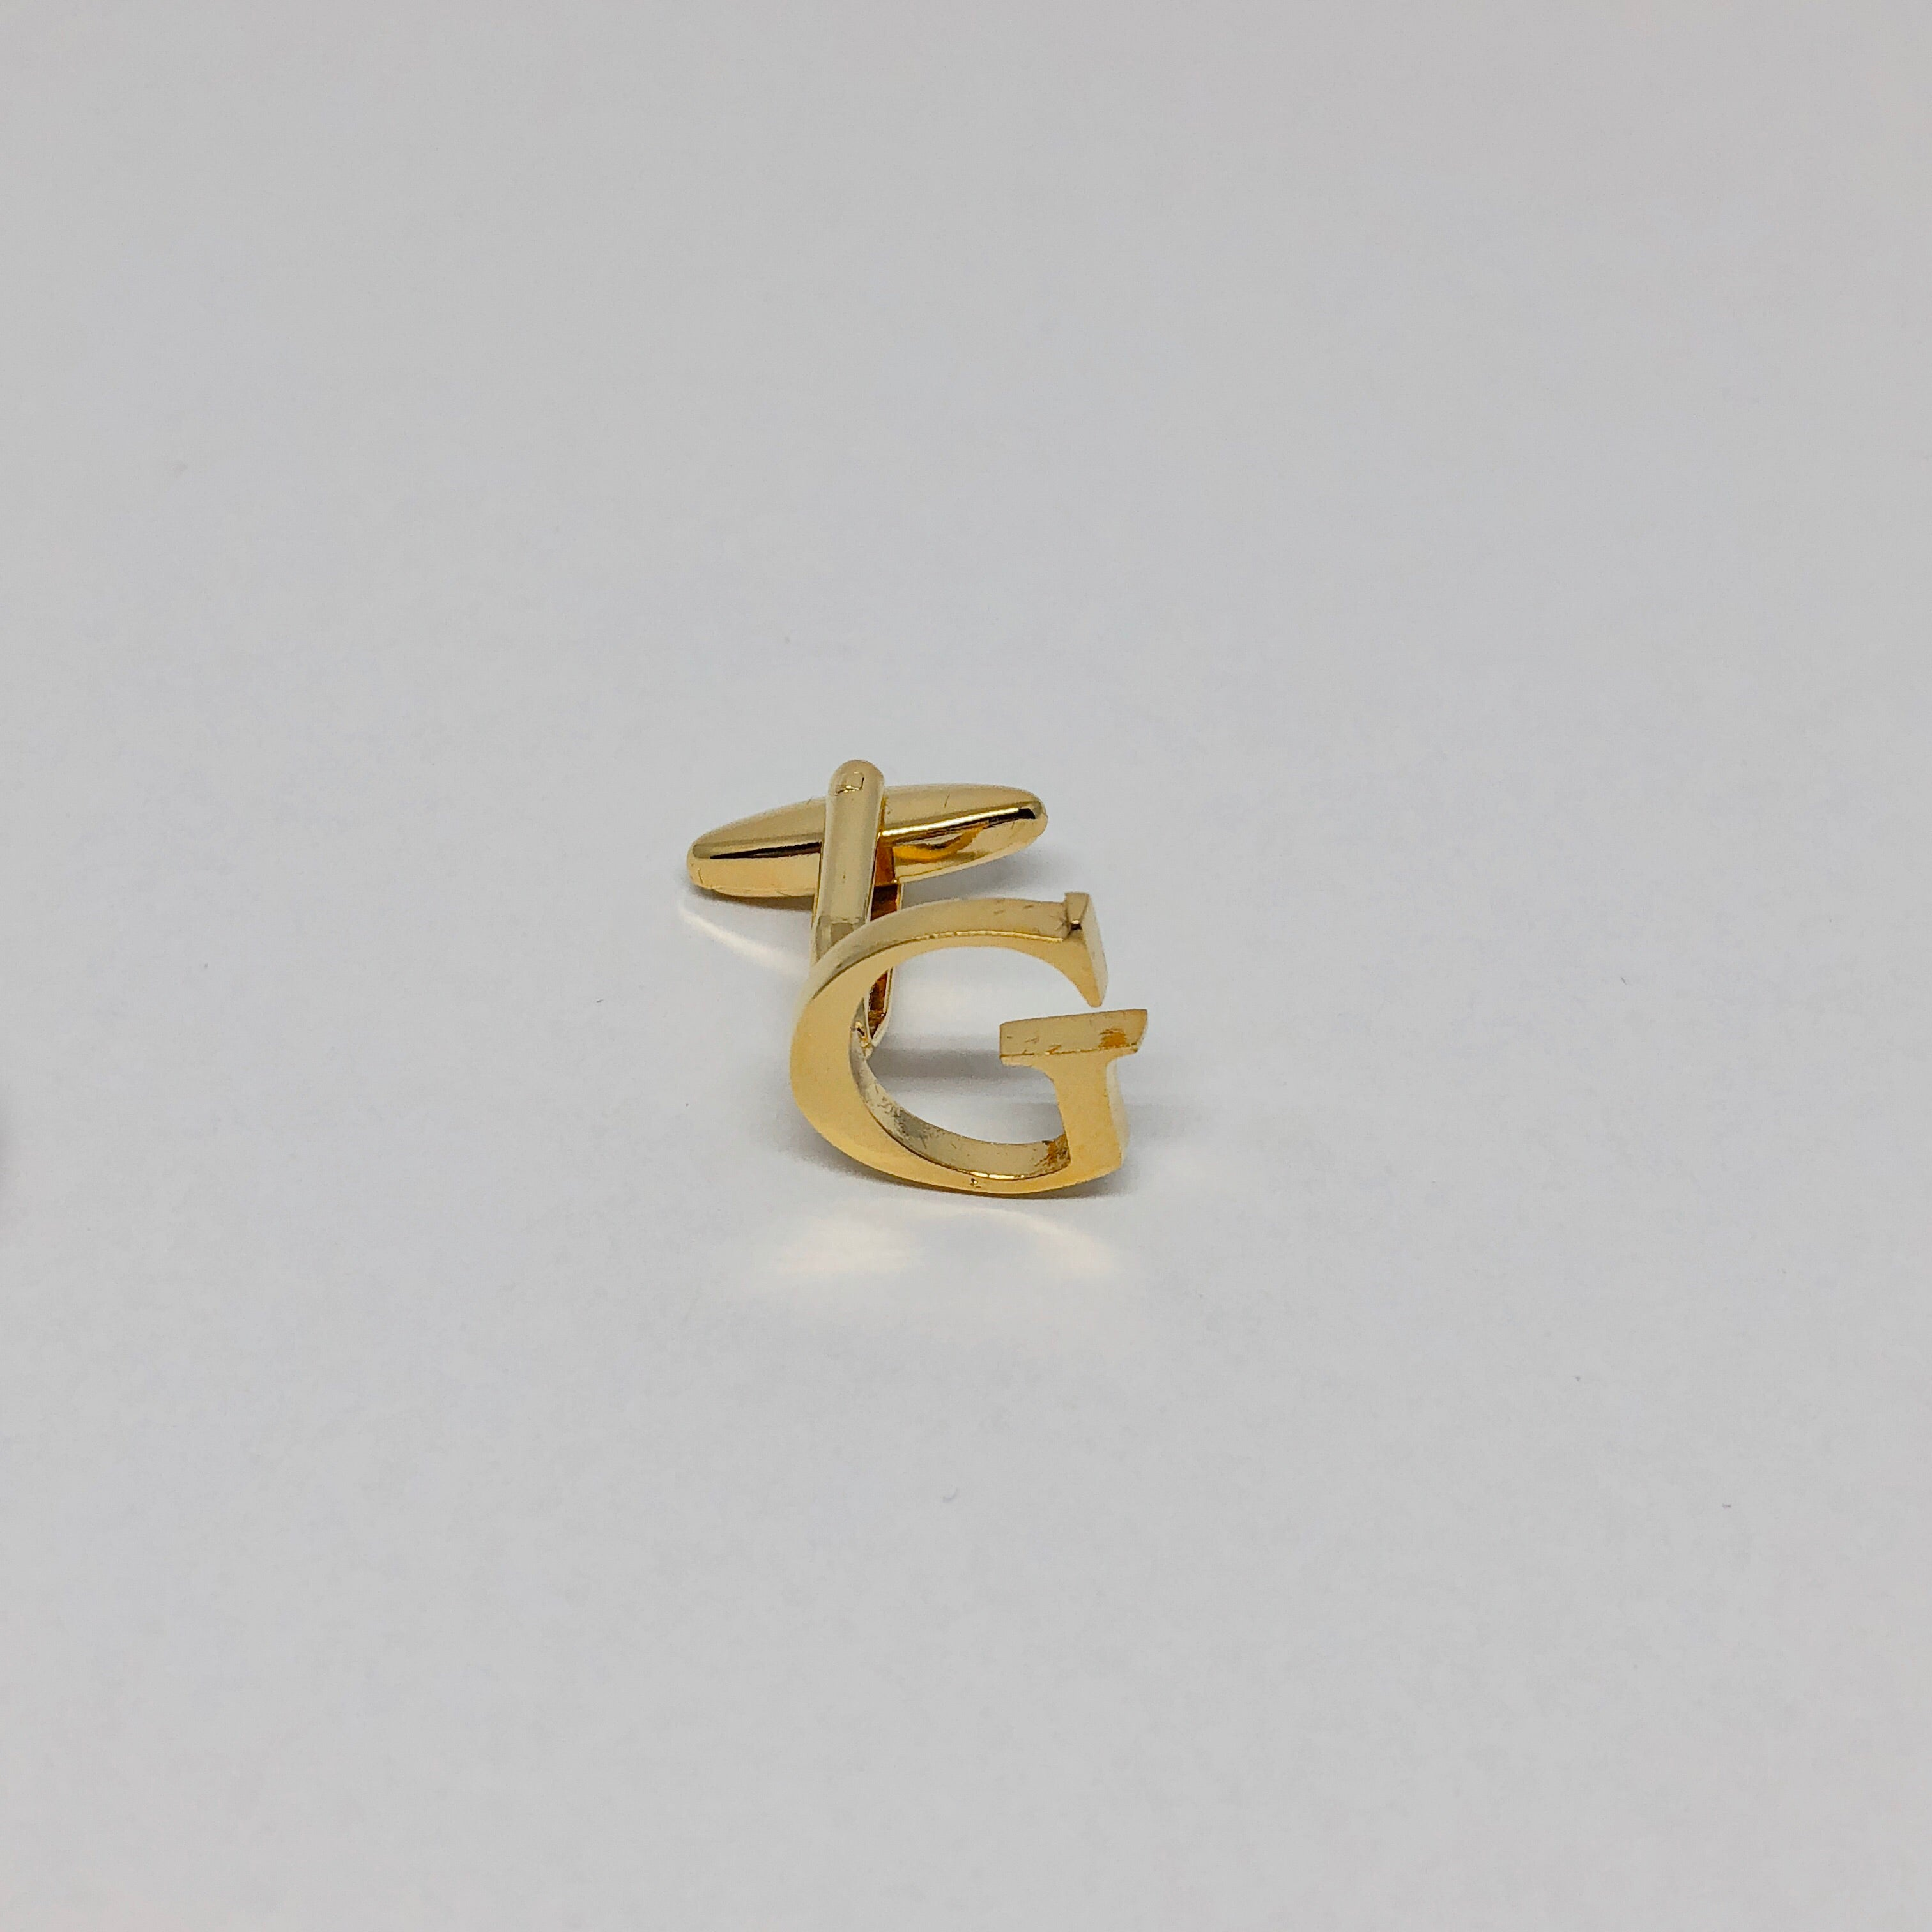 Individual Letter Cufflinks (Gold)